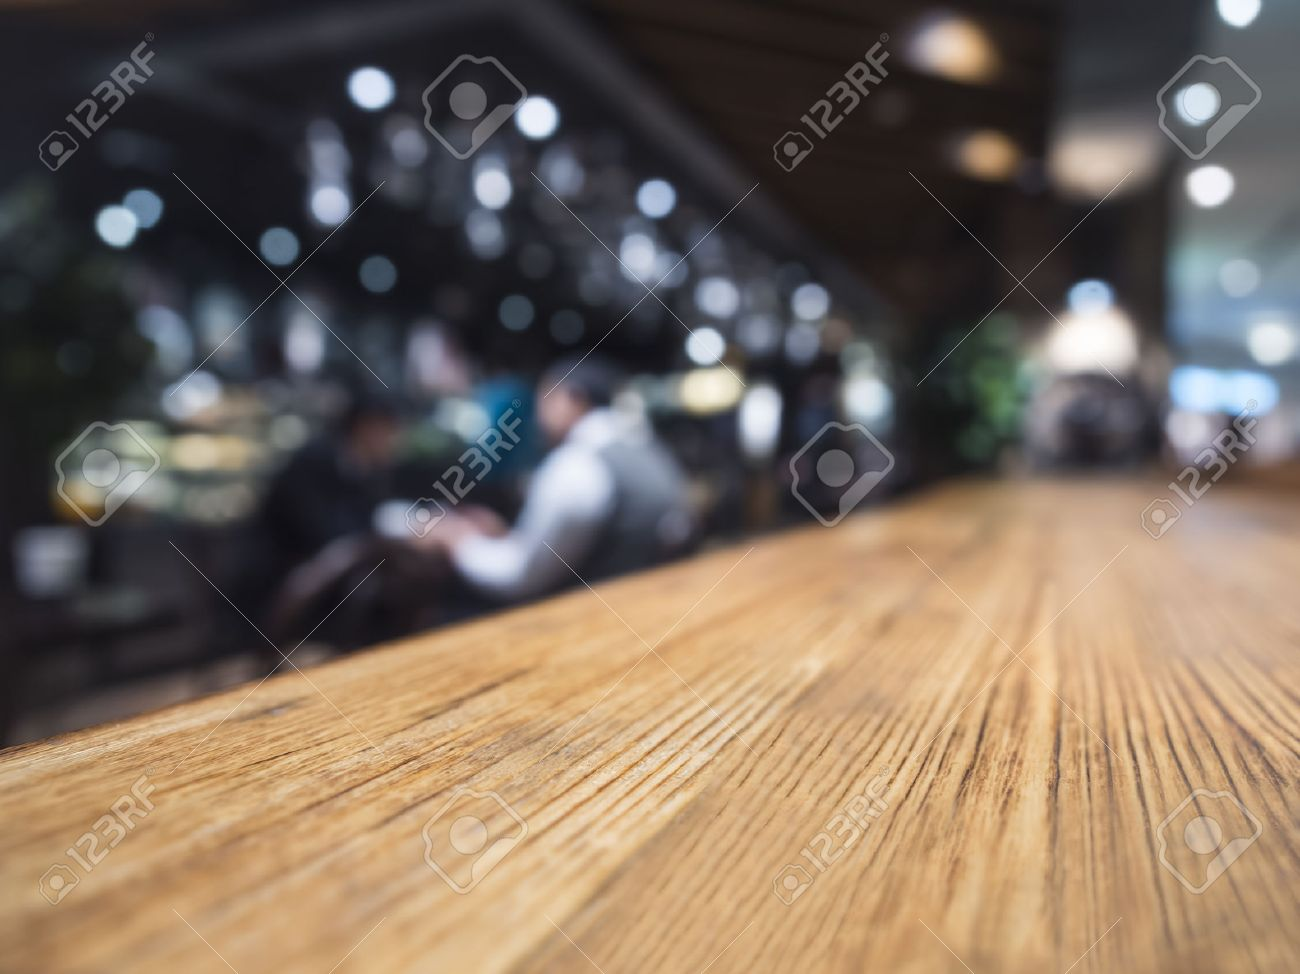 Restaurant Background With People table top counter bar restaurant background with people stock